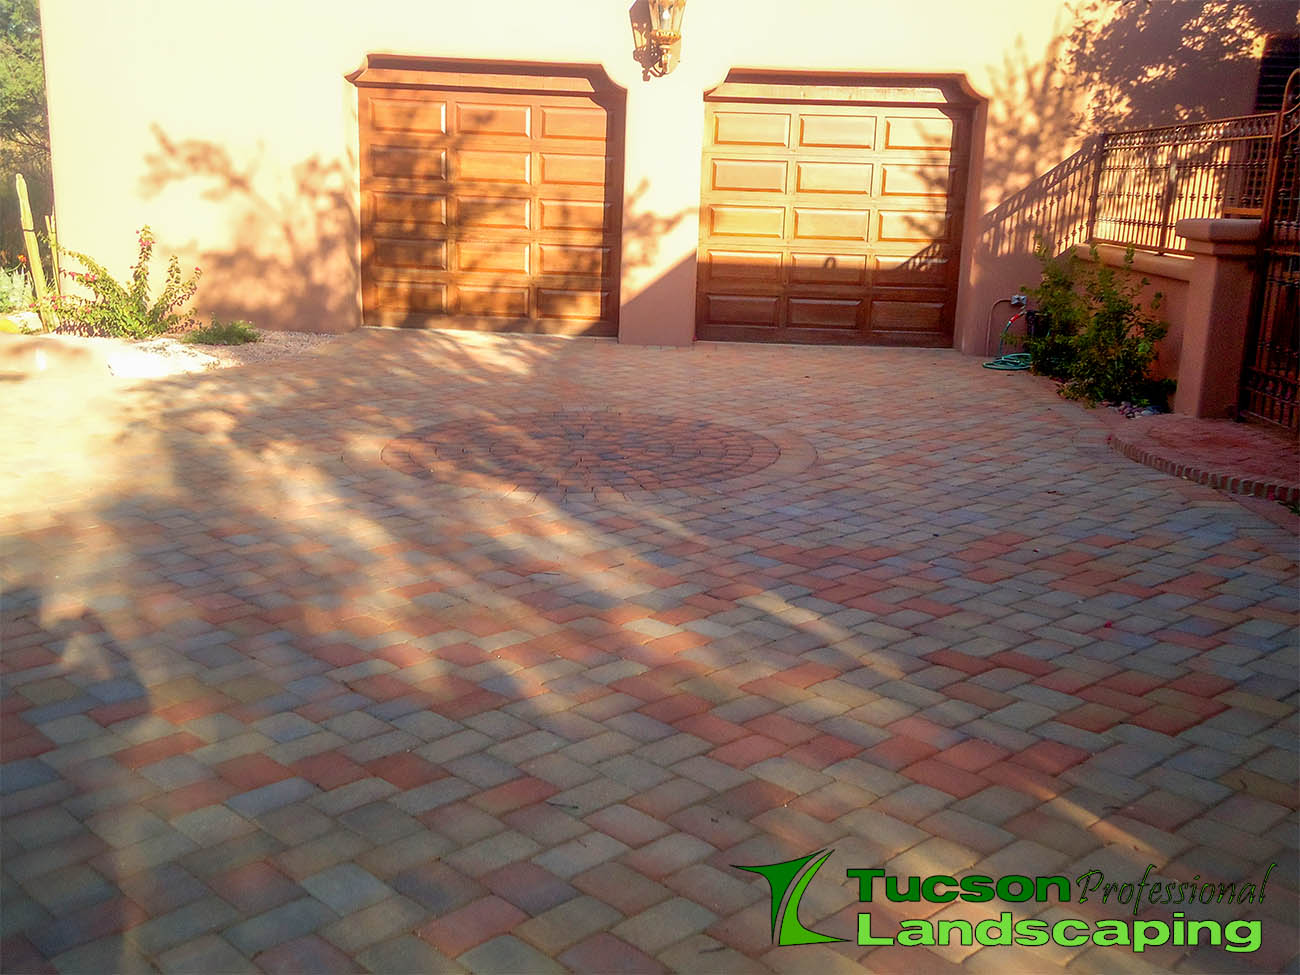 Stains And Imperfections Can Be Easily Fixed With Pavers